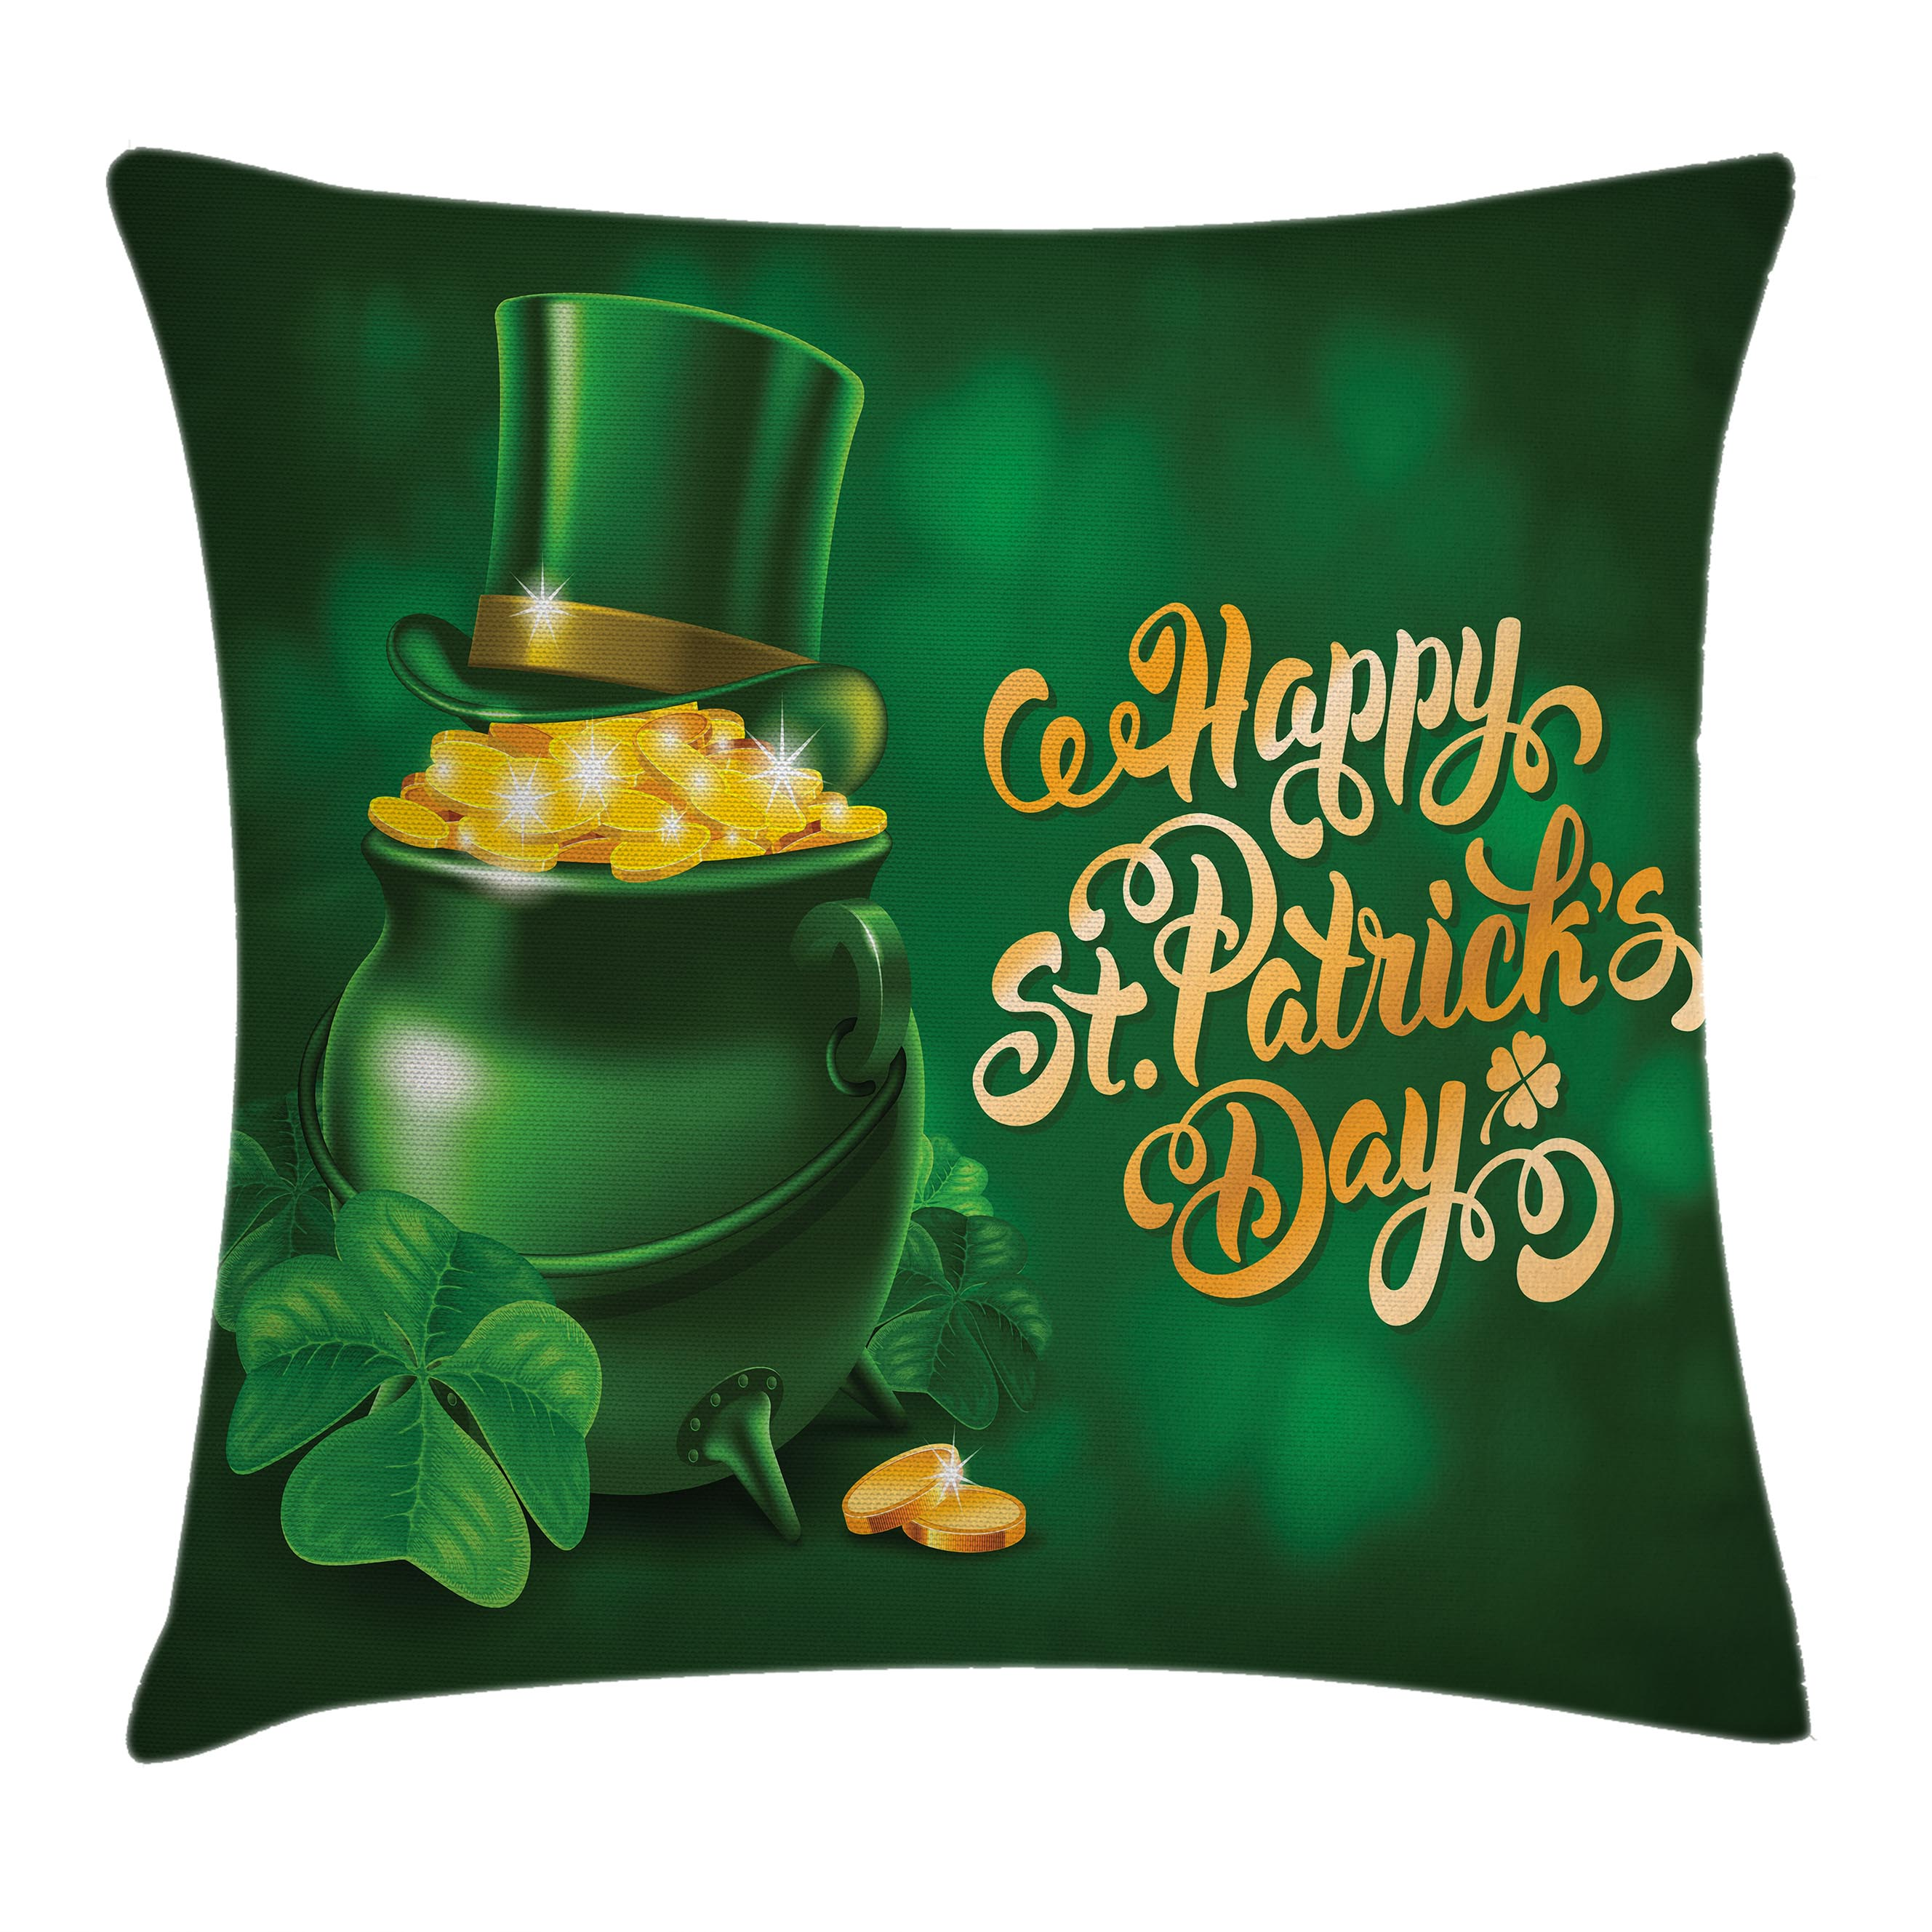 St. Patrick's Day Throw Pillow Cushion Cover, Large Pot of Gold Leprechaun Hat and Shamrocks Greetings 17th March, Decorative Square Accent Pillow Case, 18 X 18 Inches, Gold and Emerald, by Ambesonne